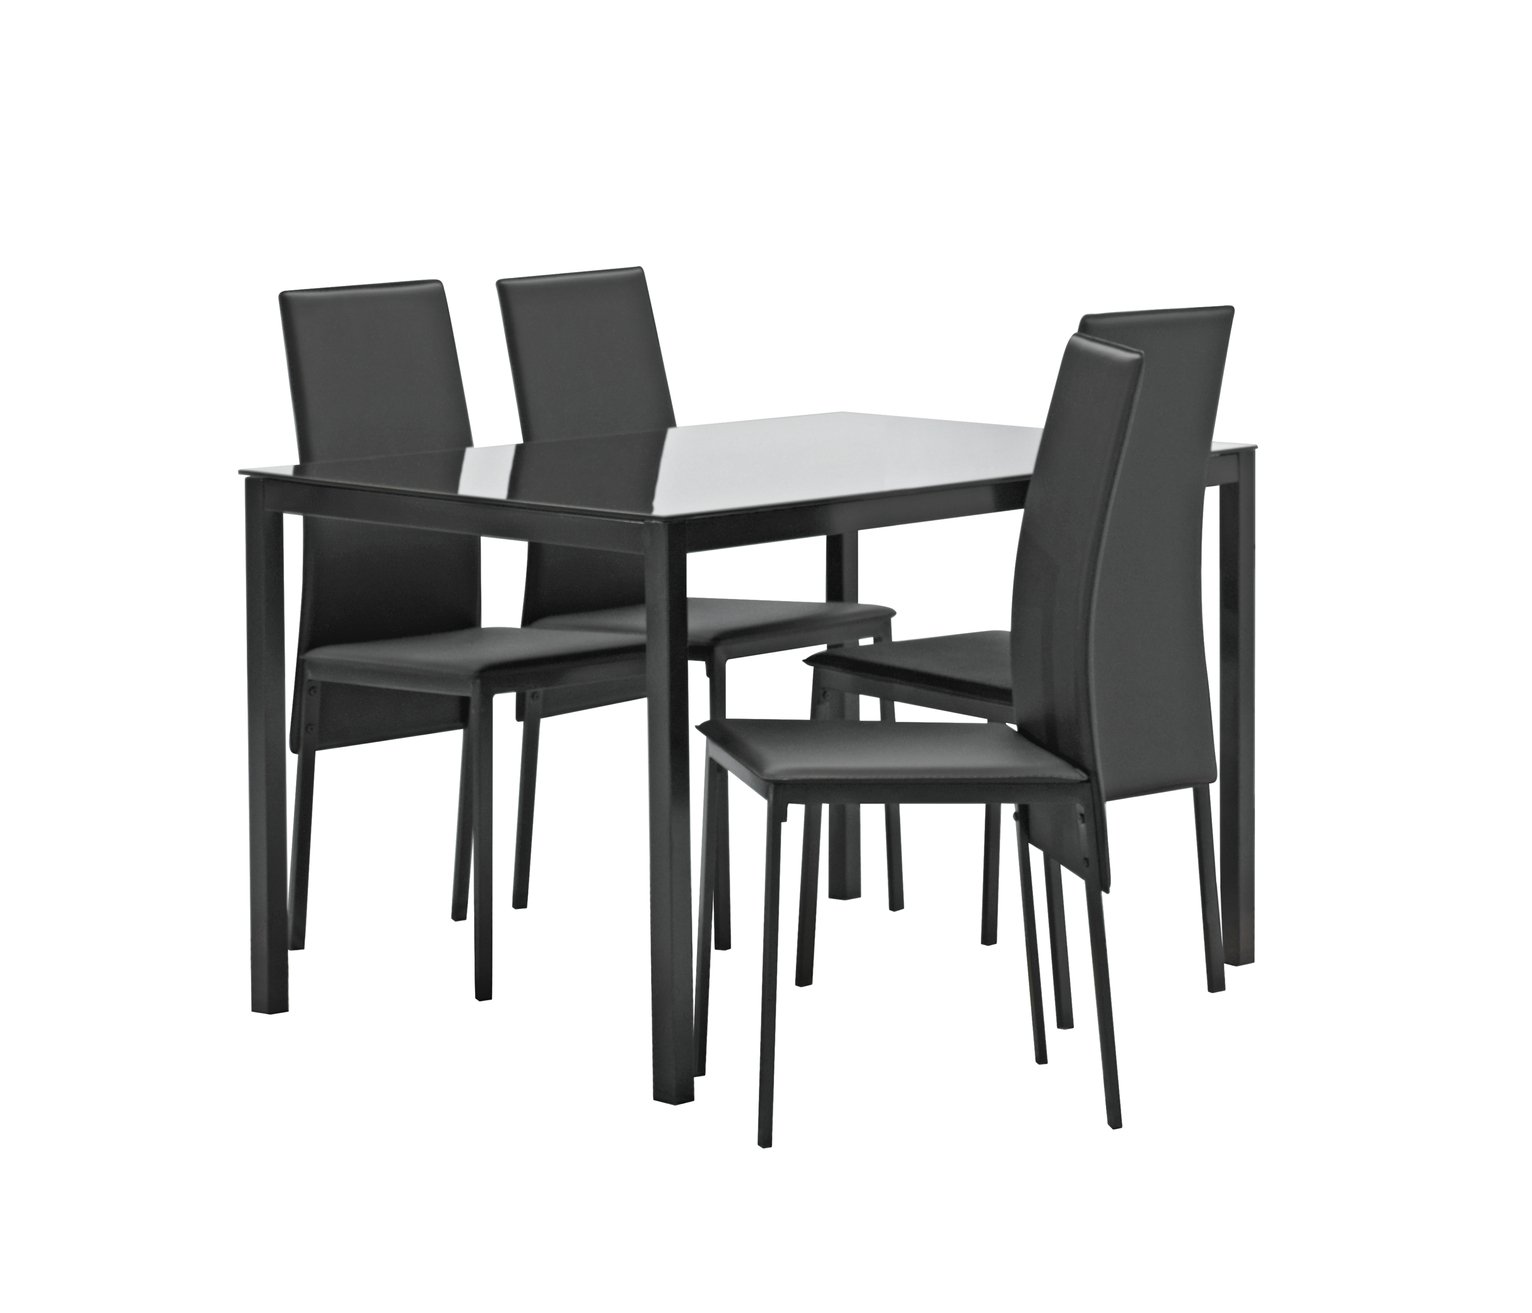 Argos Home Lido Glass Dining Table & 4 Chairs